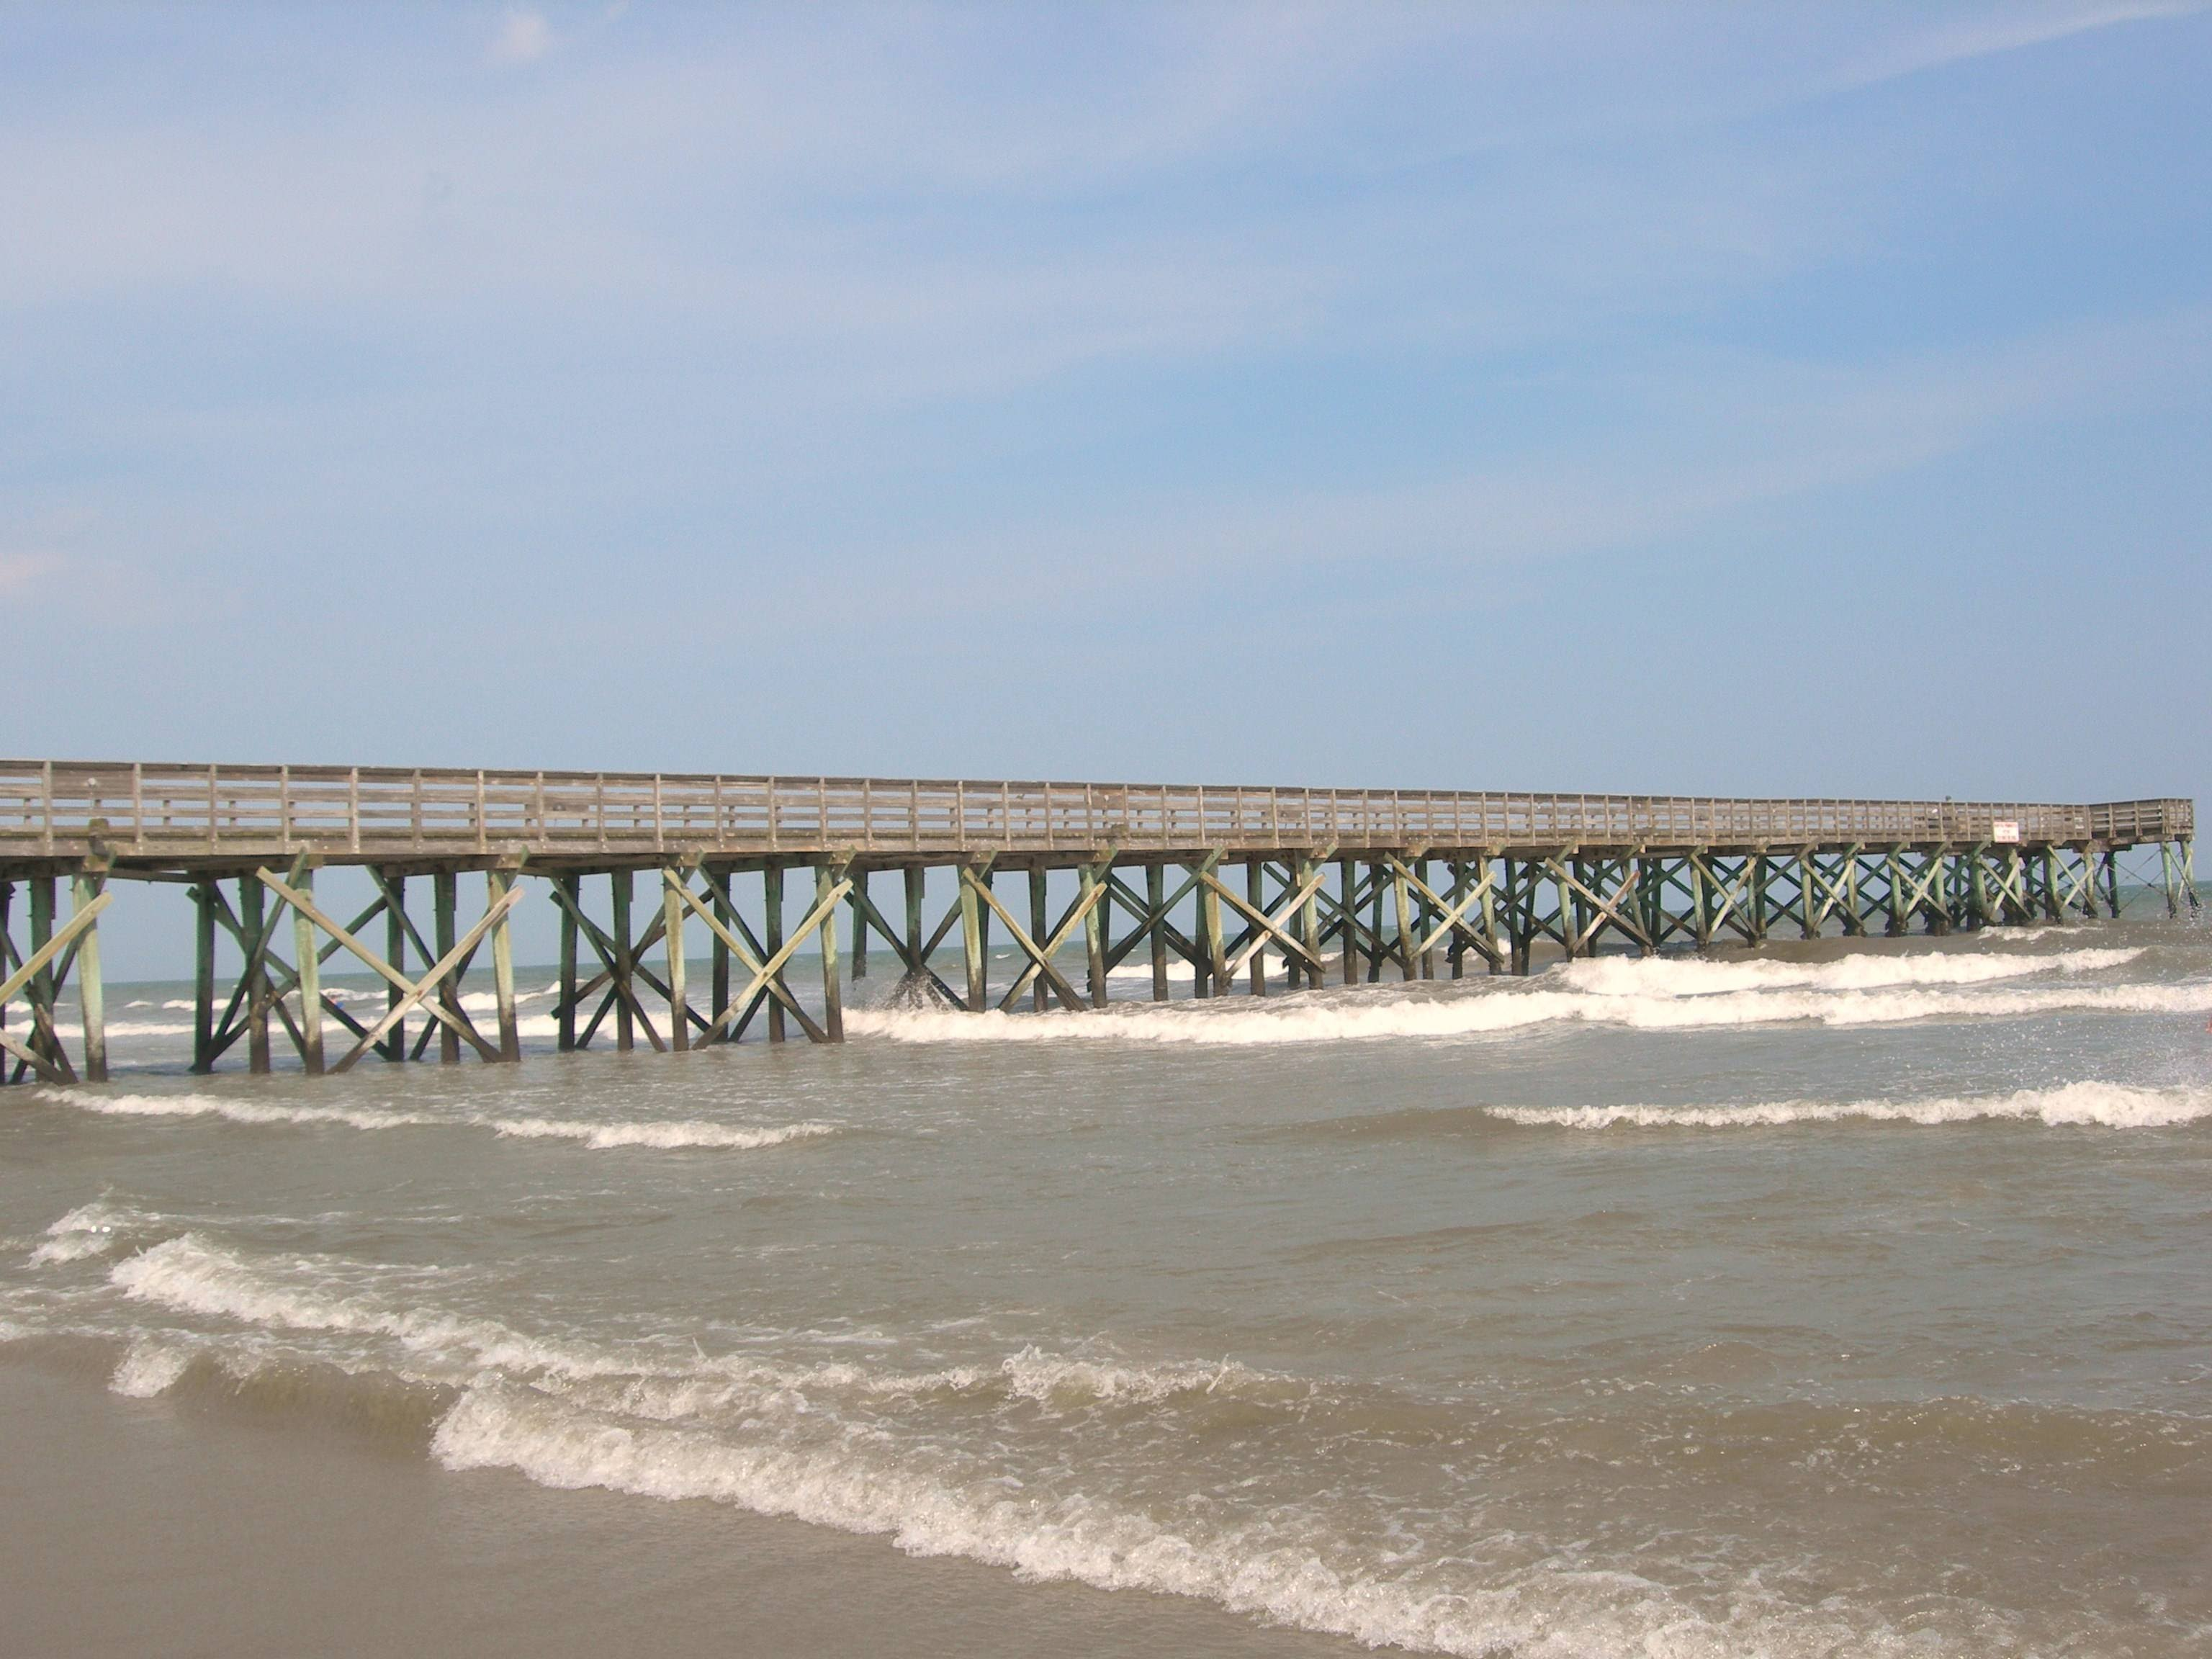 beach chair rental isle of palms electric lift chairs harvey norman charleston screcommendations hldjms711